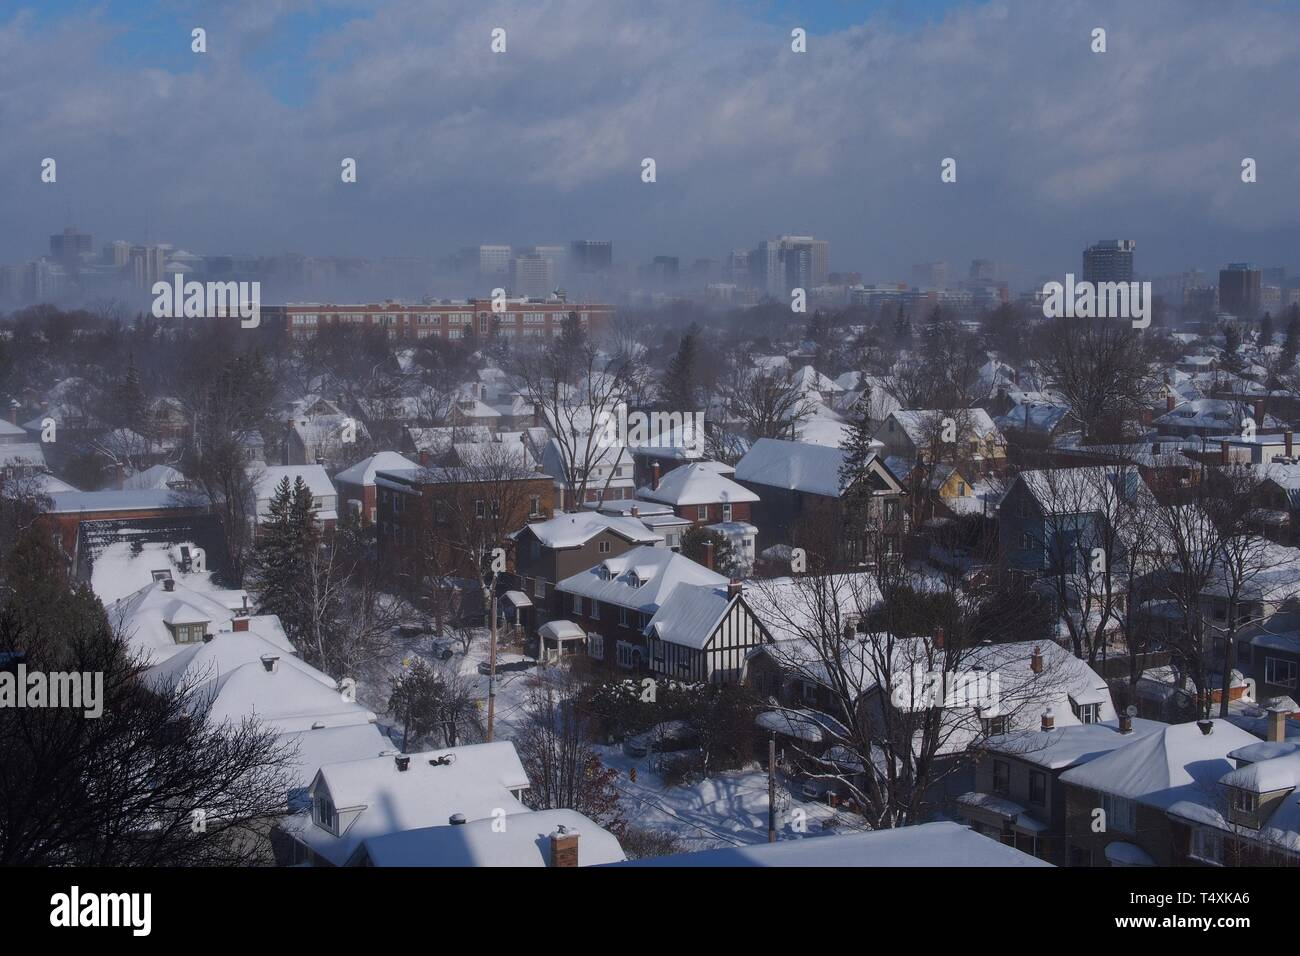 Despite a clear blue sky, a snow squall blankets downtown Ottawa during a polar vortex, Winter 2019. - Stock Image